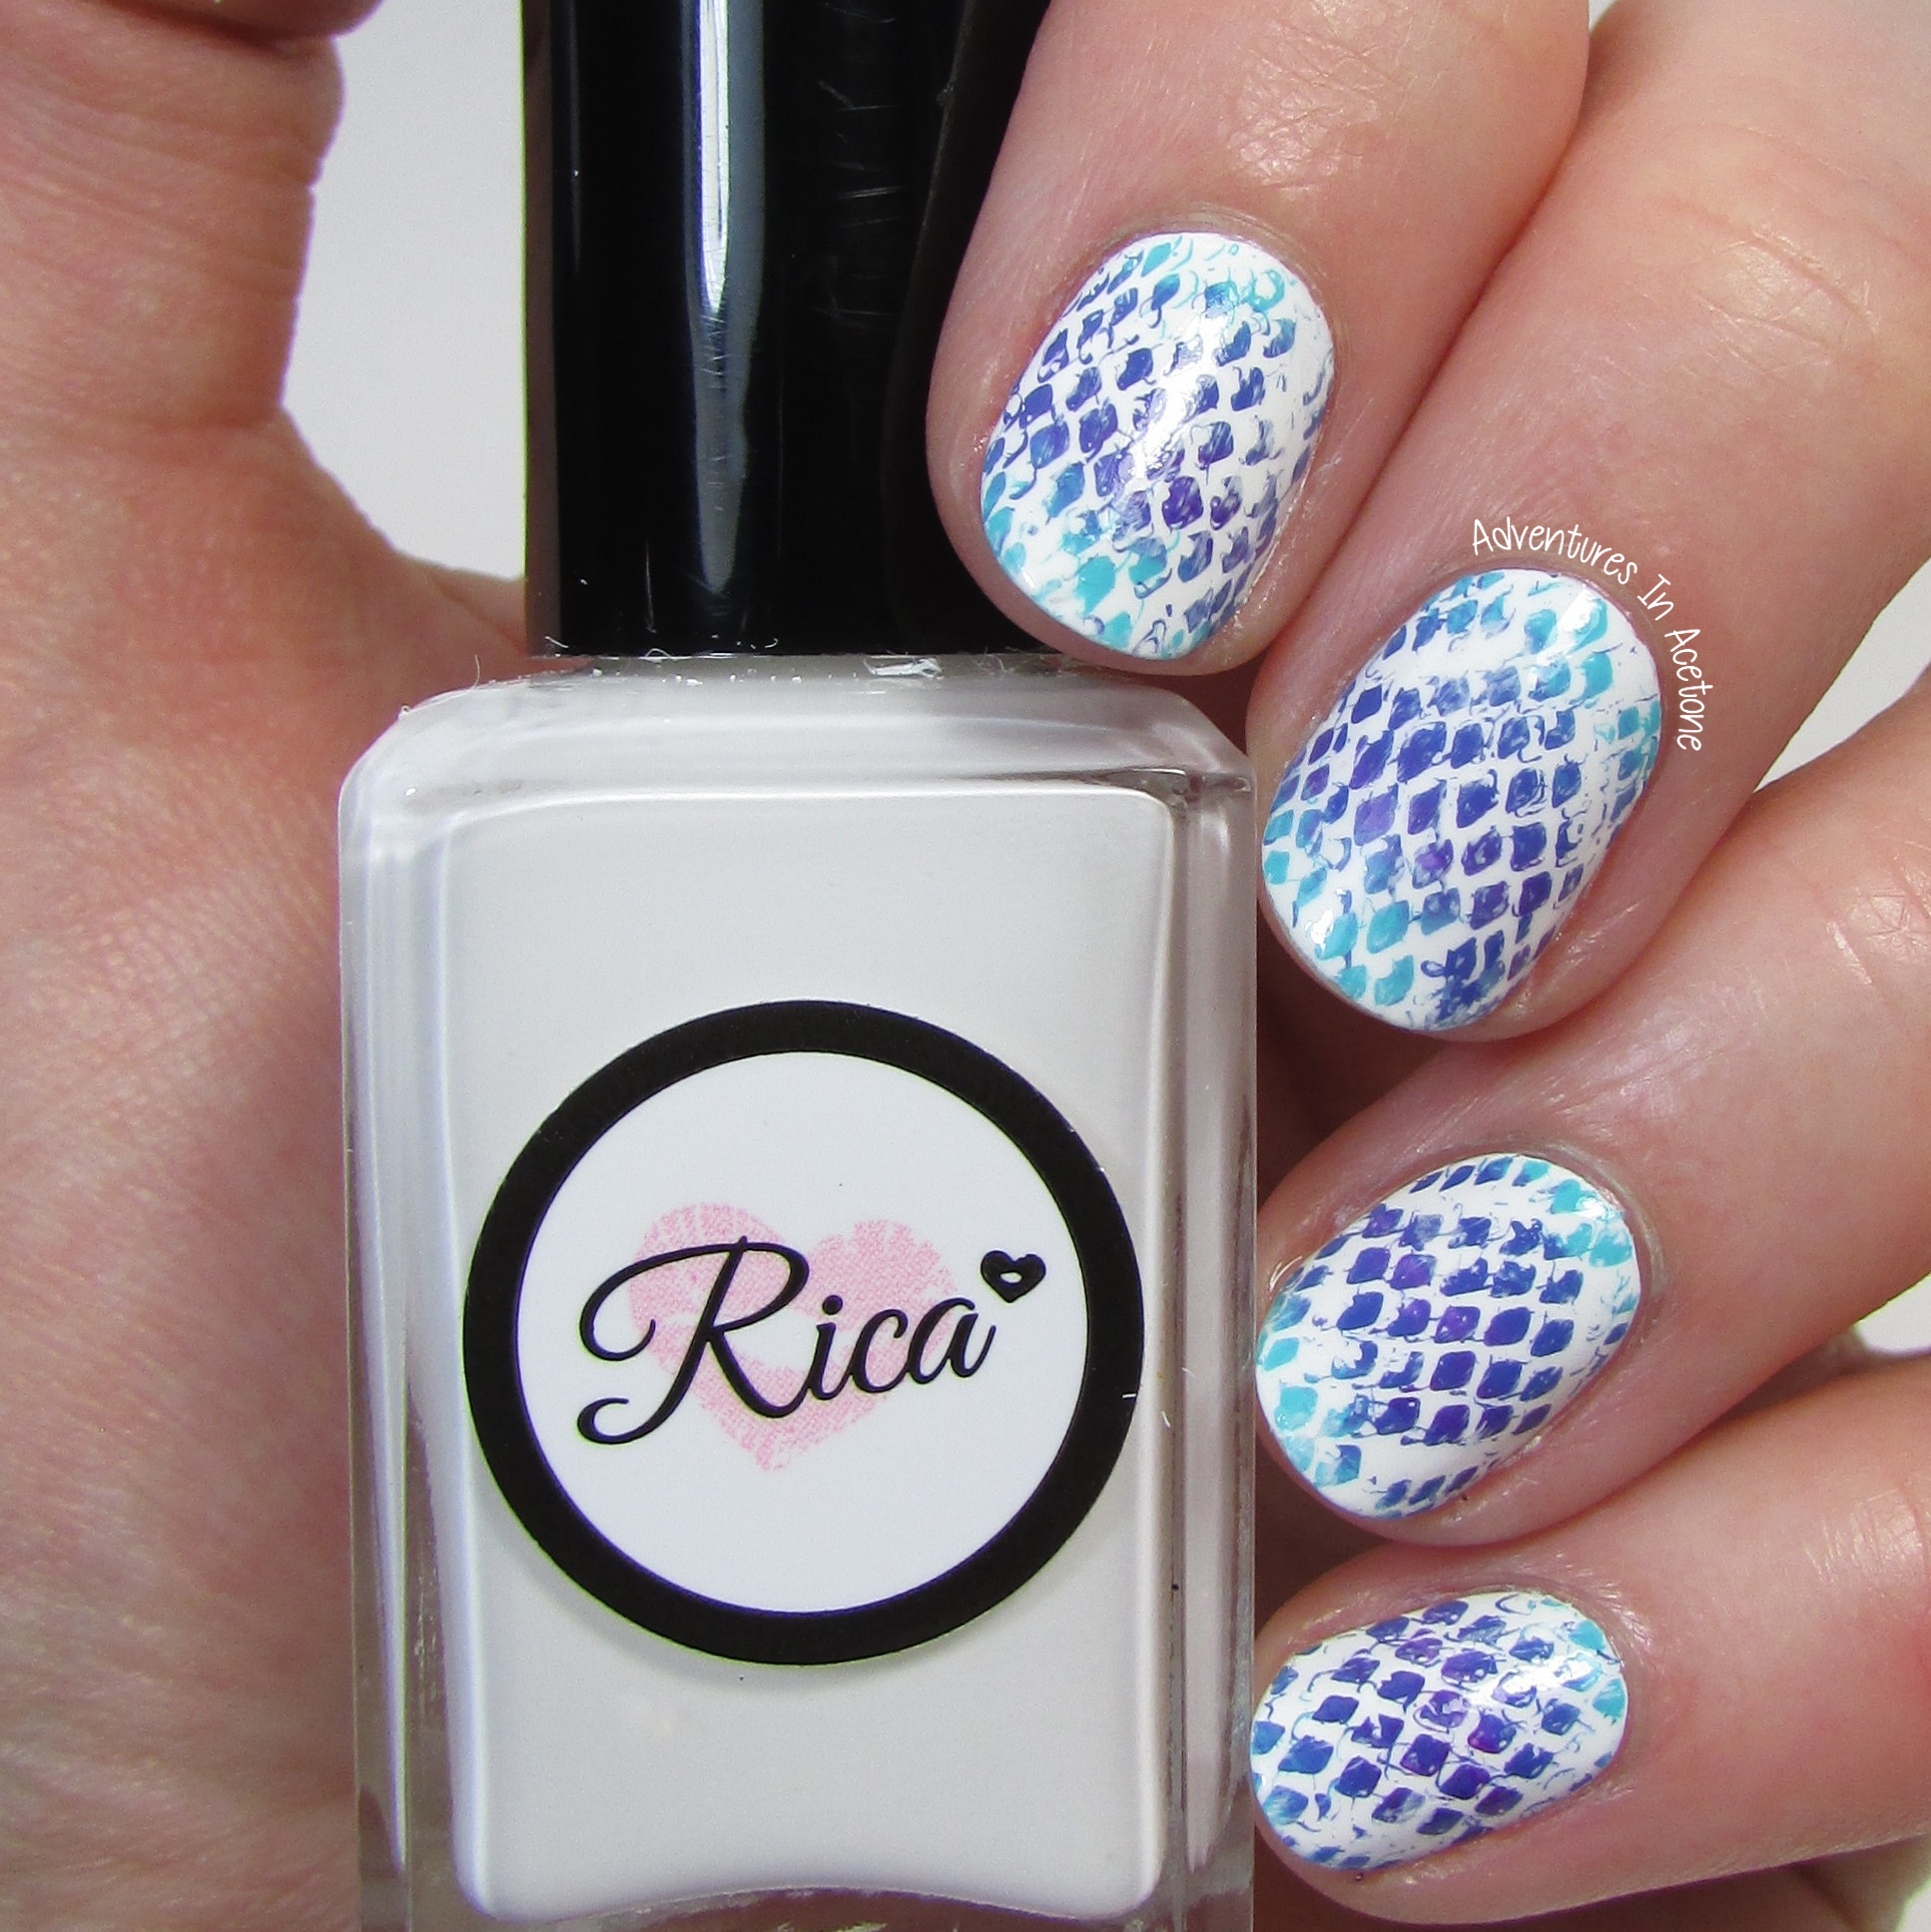 OtterBox iPhone Case Inspired Snake Skin Nail Art - Adventures In ...